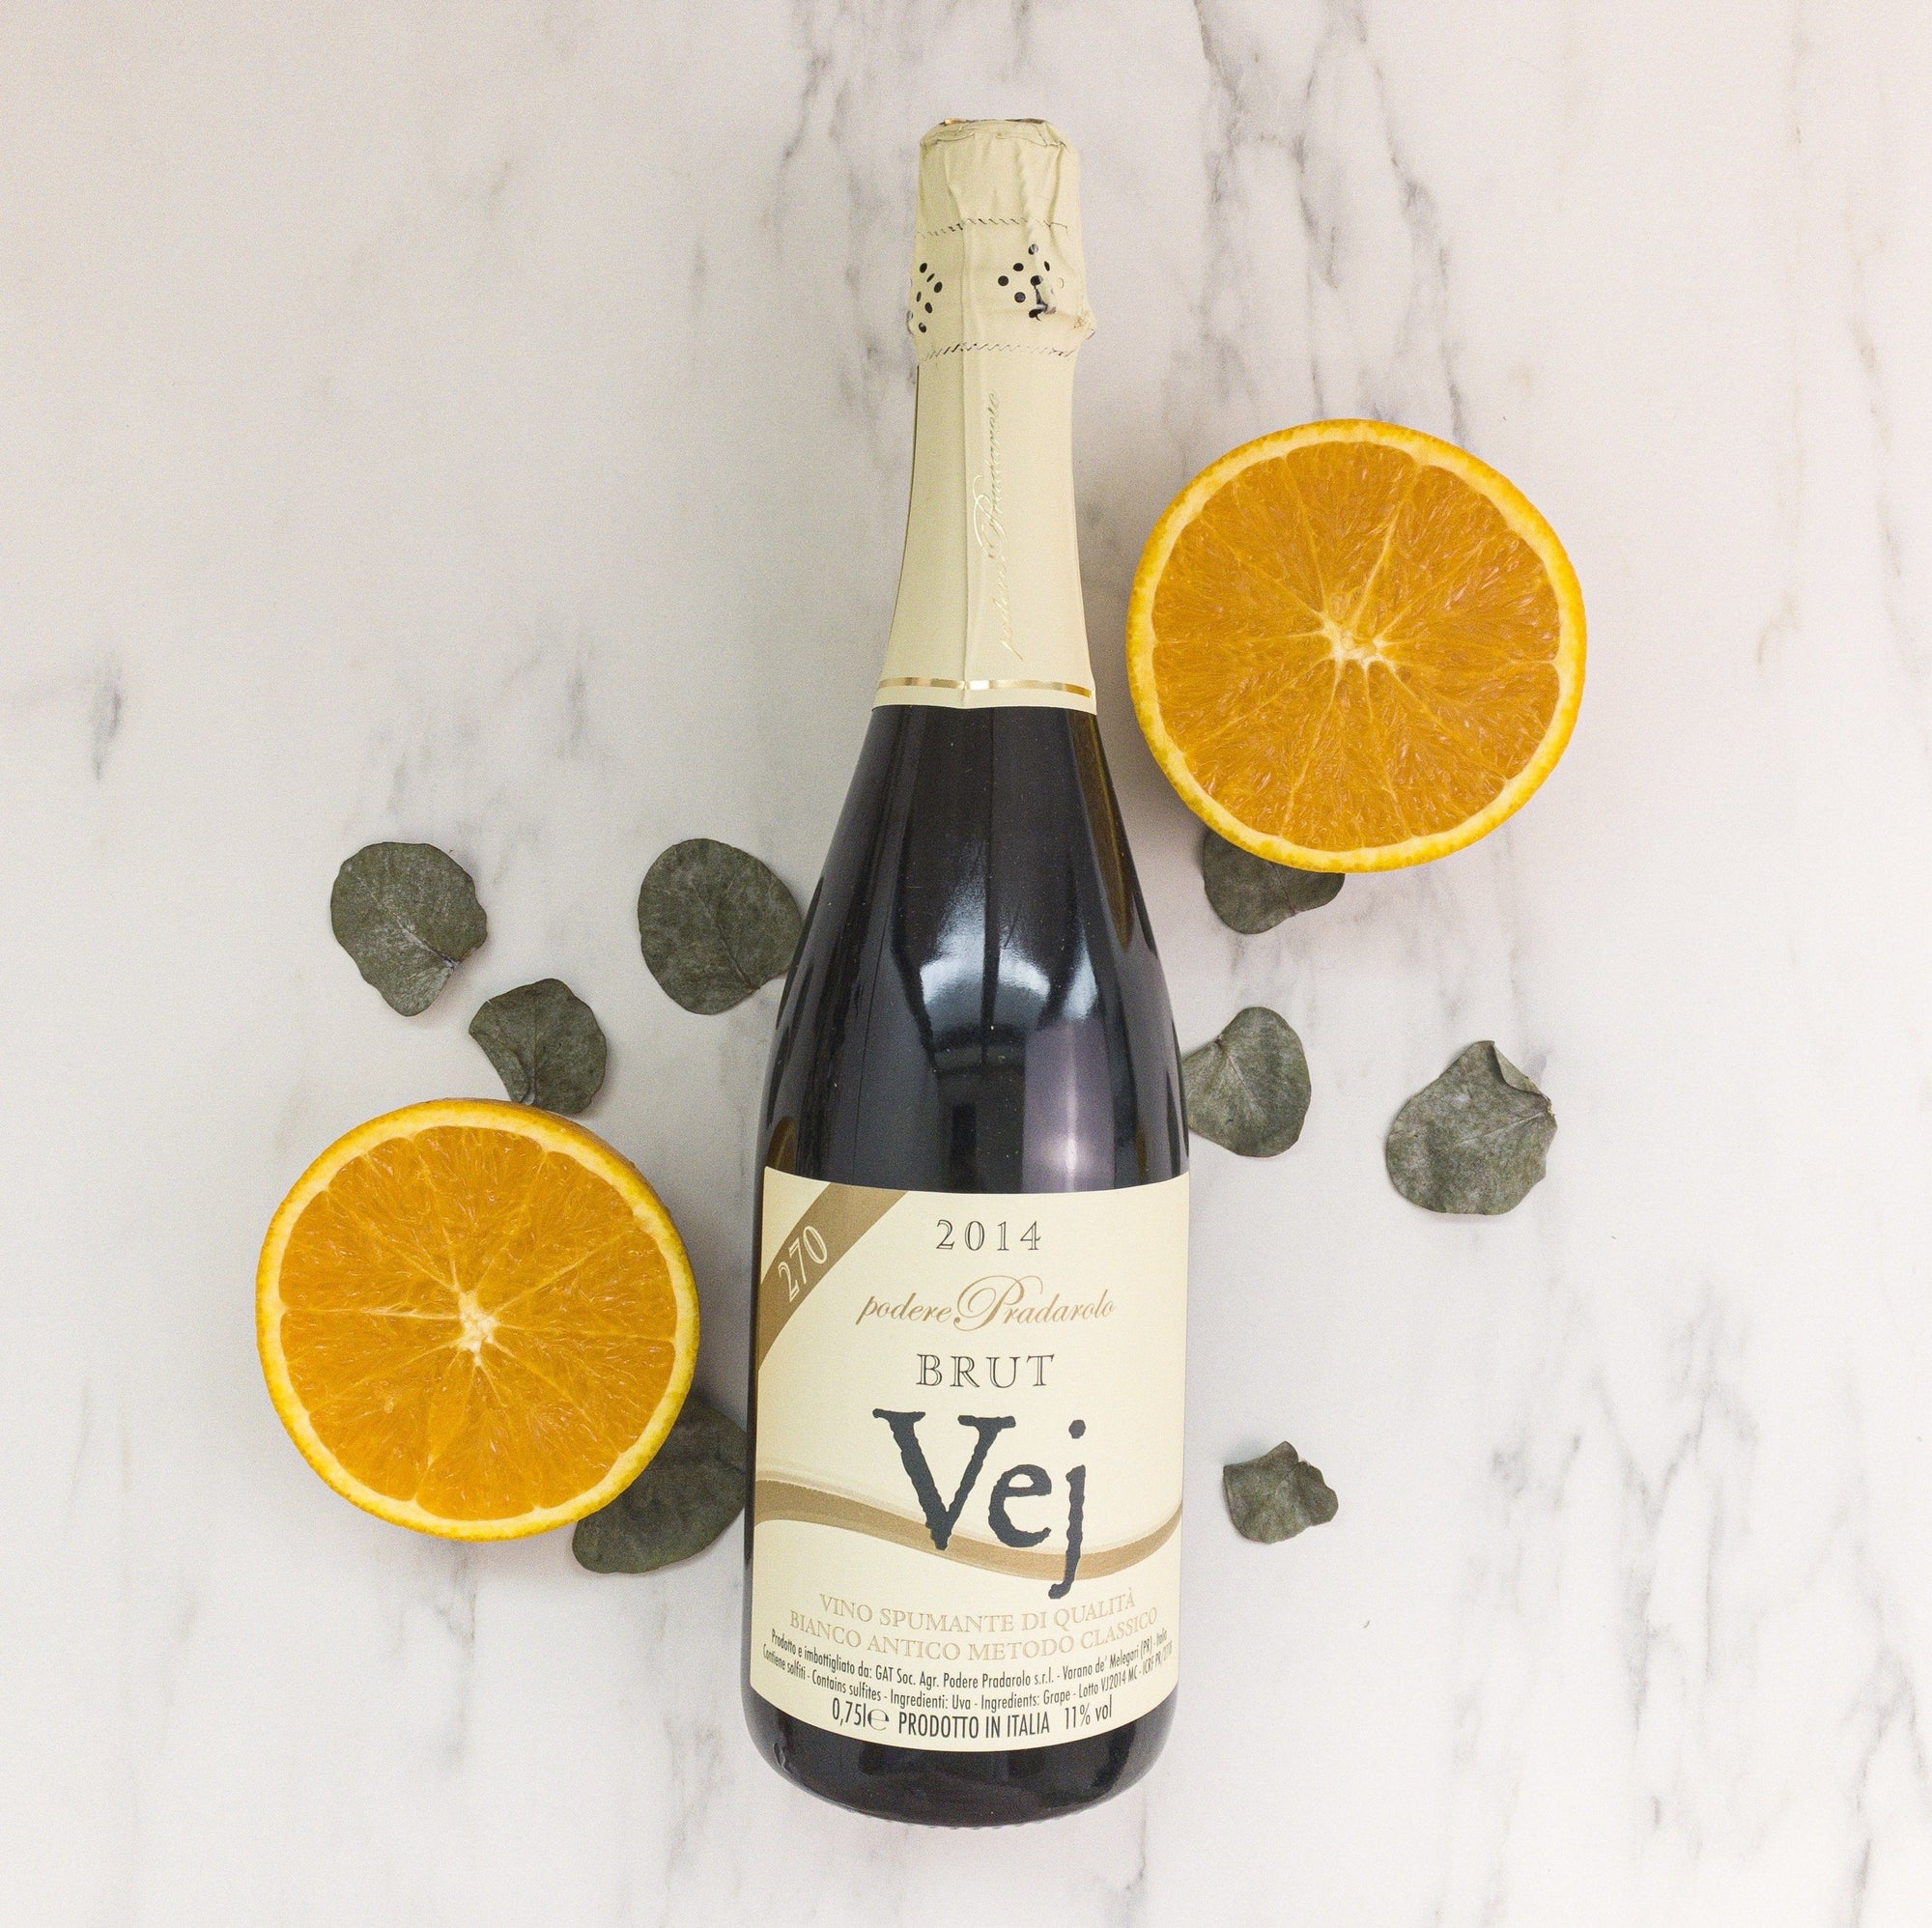 An Italian Orange Wine that is bubbly from Italy made with classic Champagne method